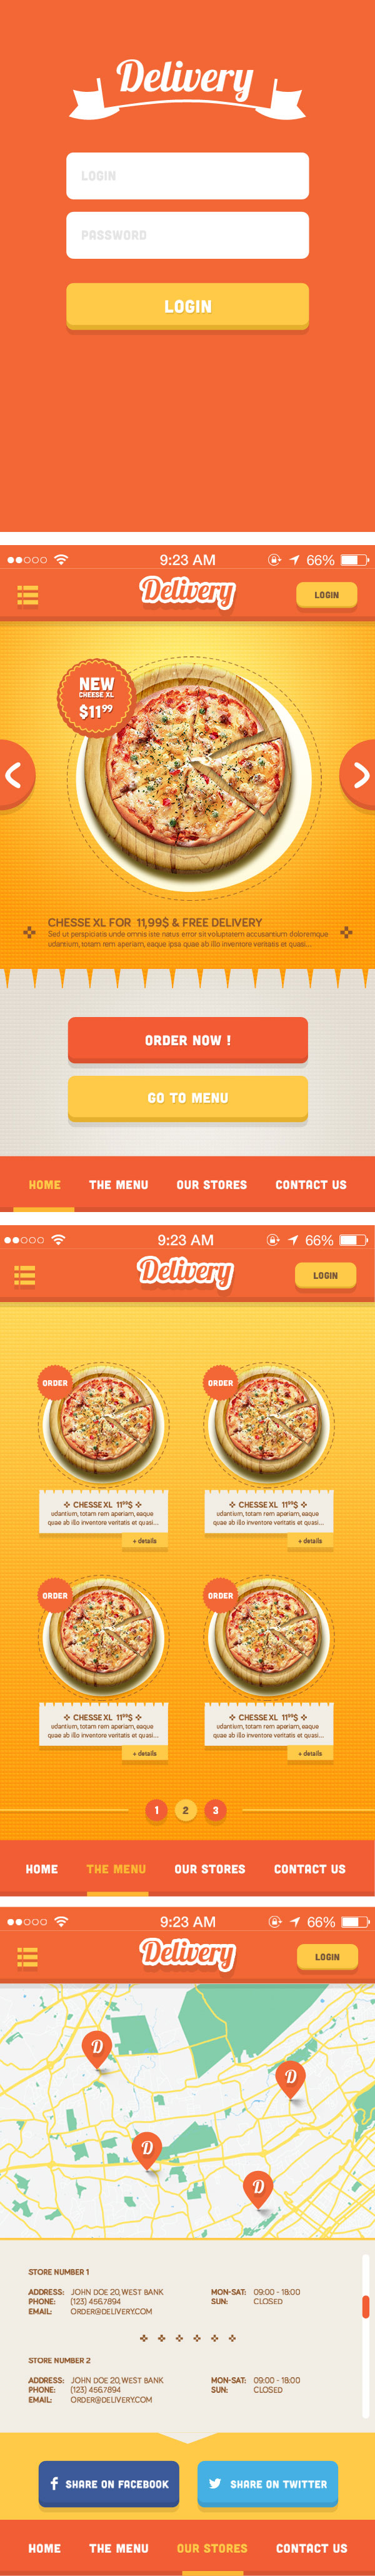 Delivery-App-for-iPhone-UI-Kit-PSD